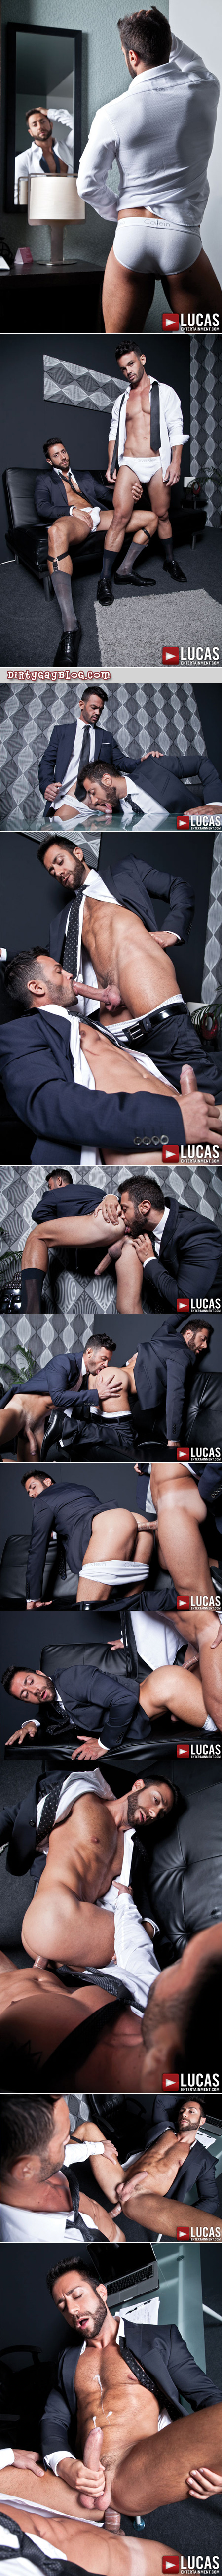 Hung Italian male is fucked by another hung businessman in a suit and shoots a huge load.